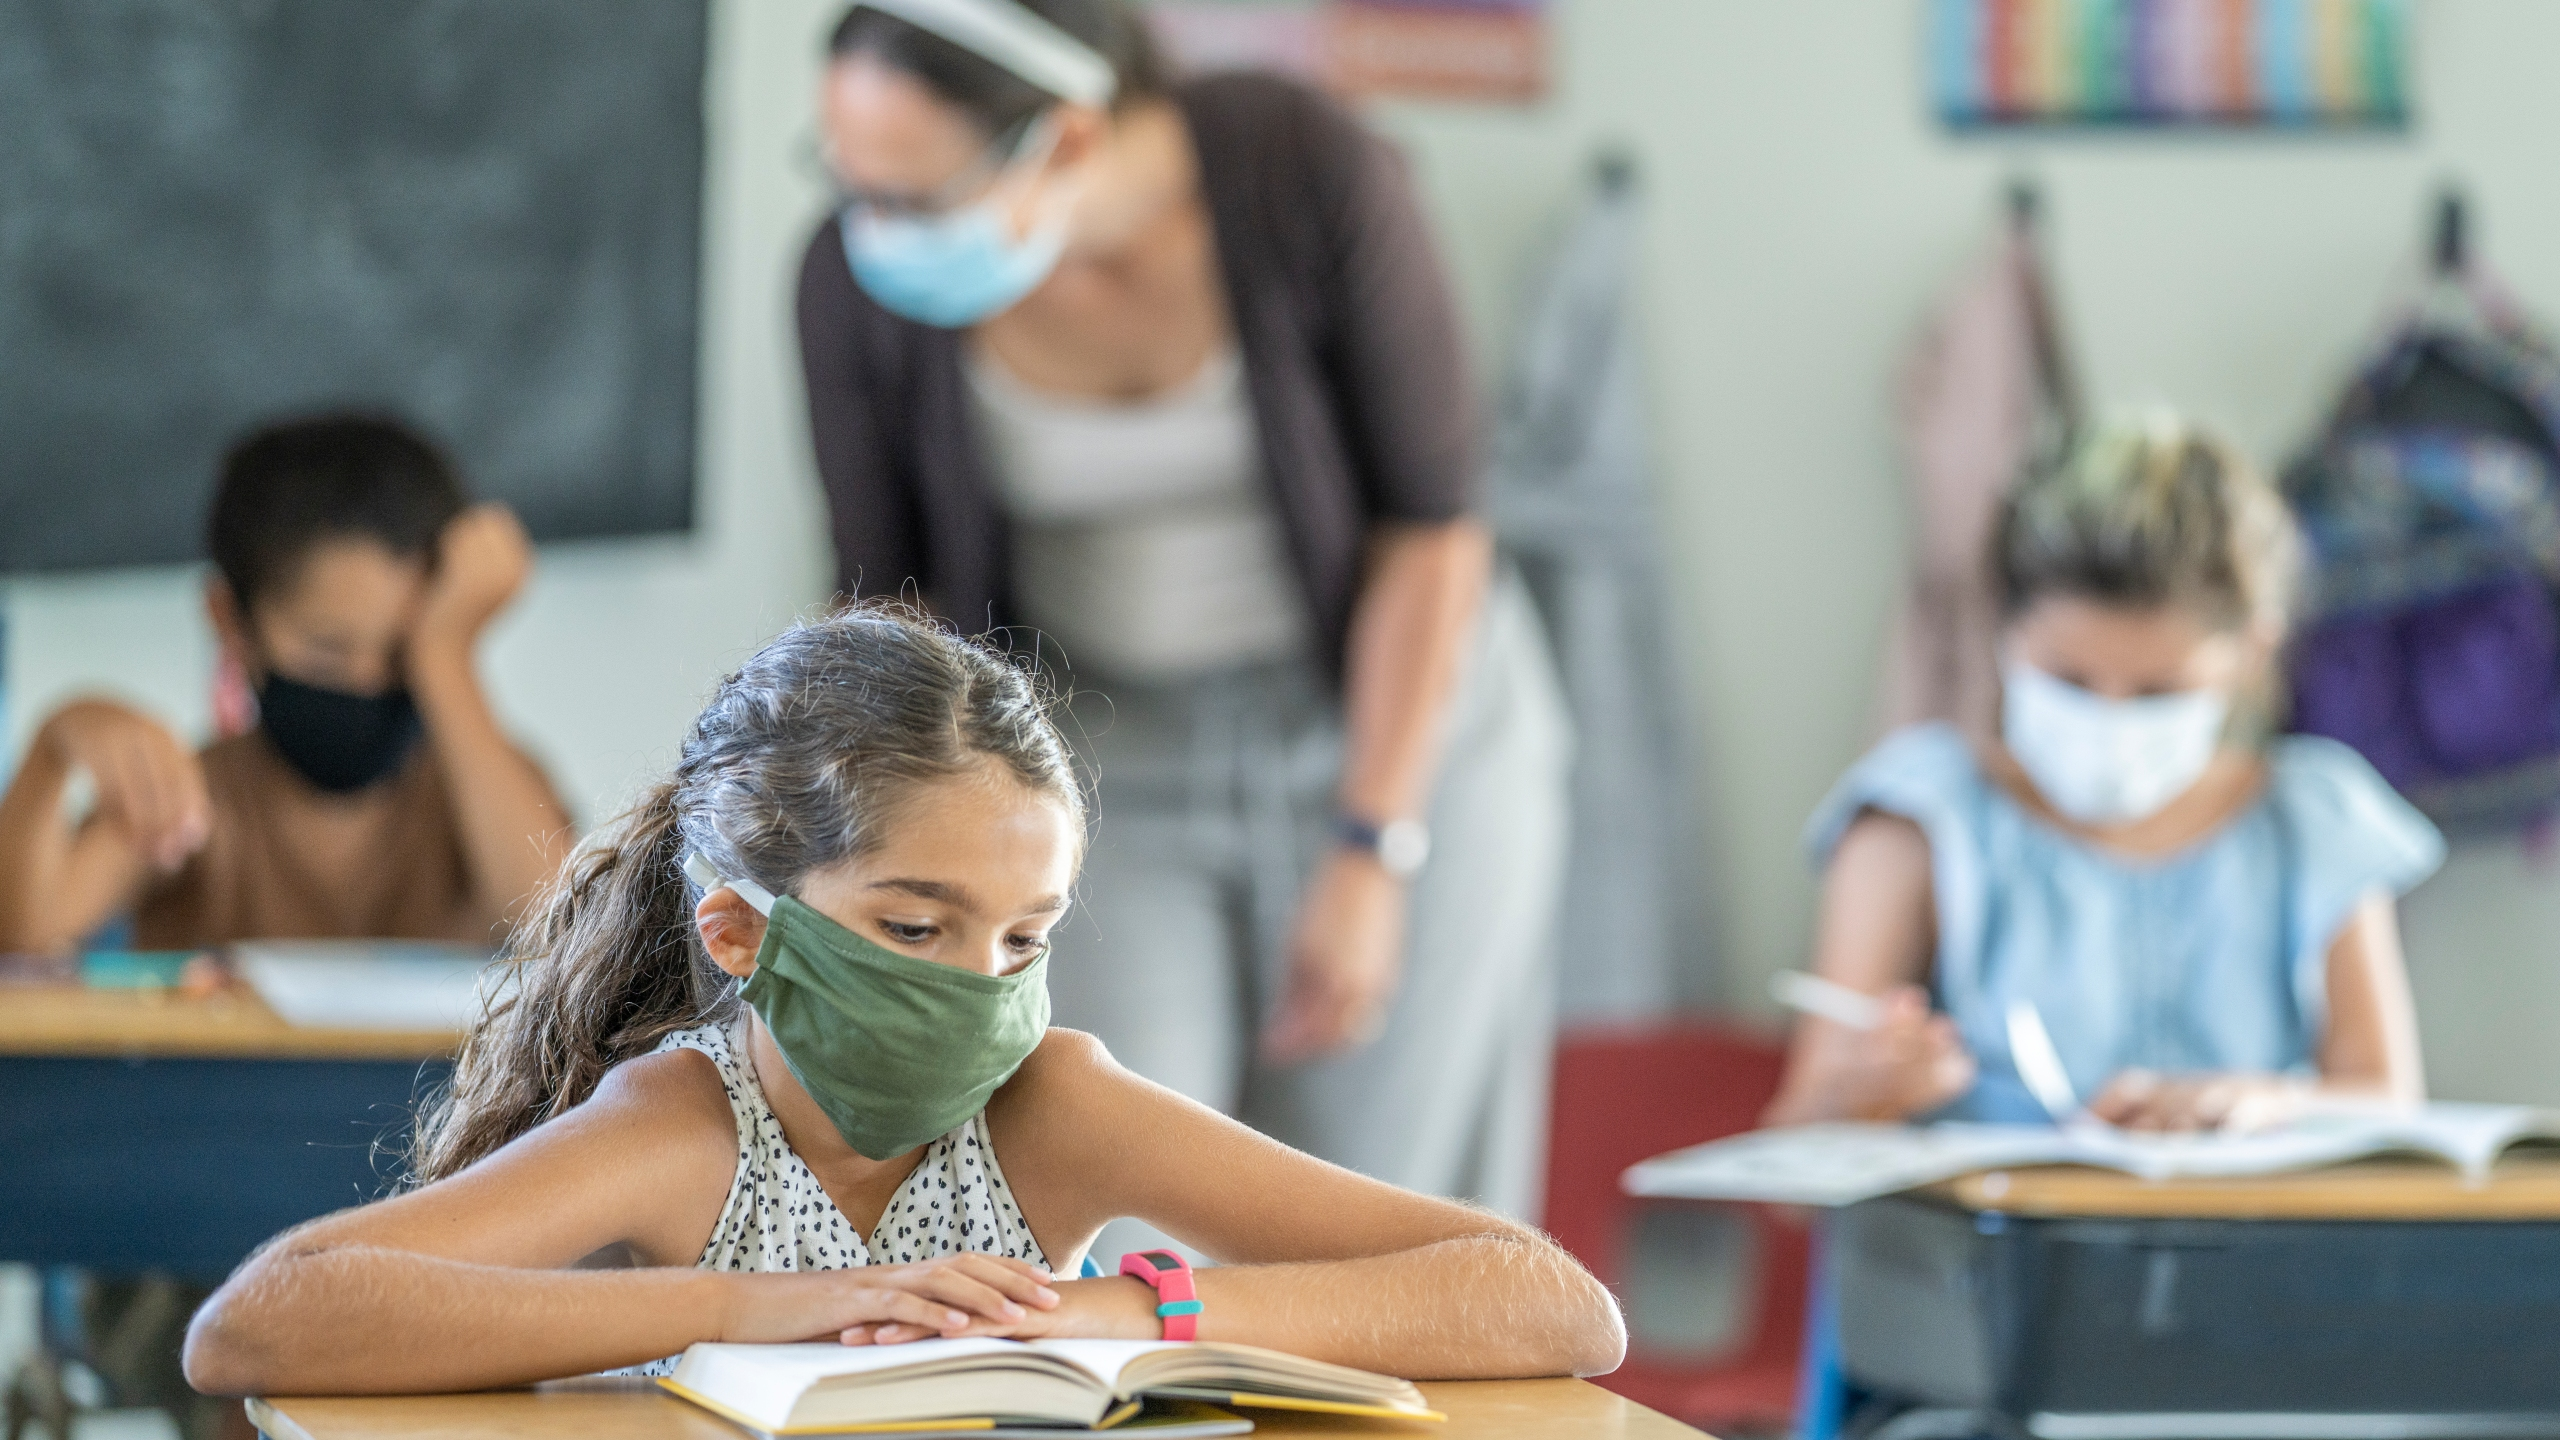 student wearing face mask in school